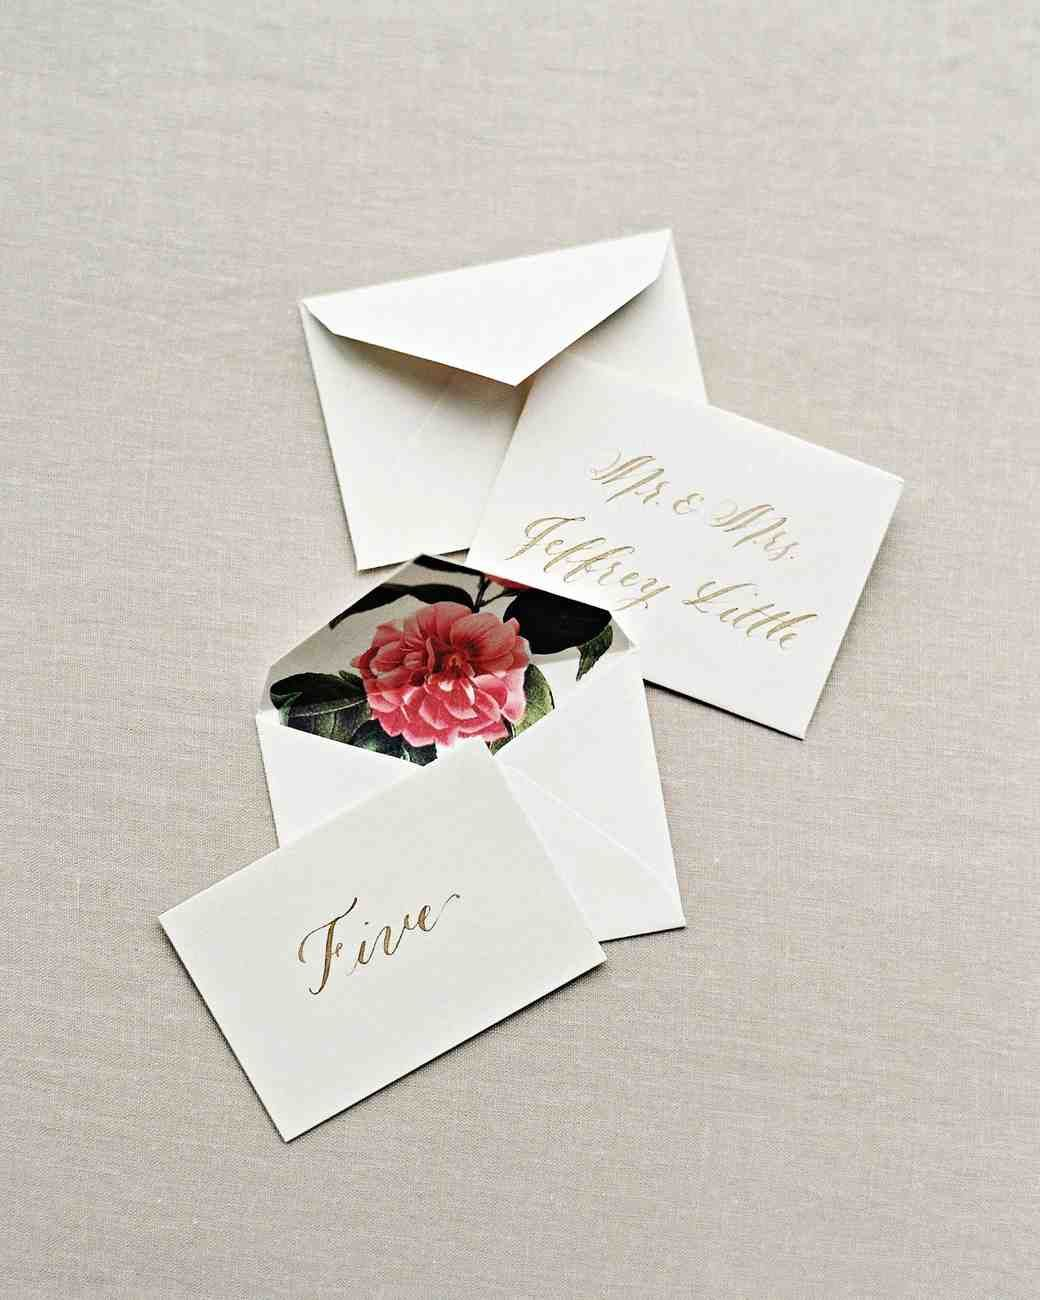 25 Ideas for the Prettiest Calligraphed Escort Cards   Martha ...